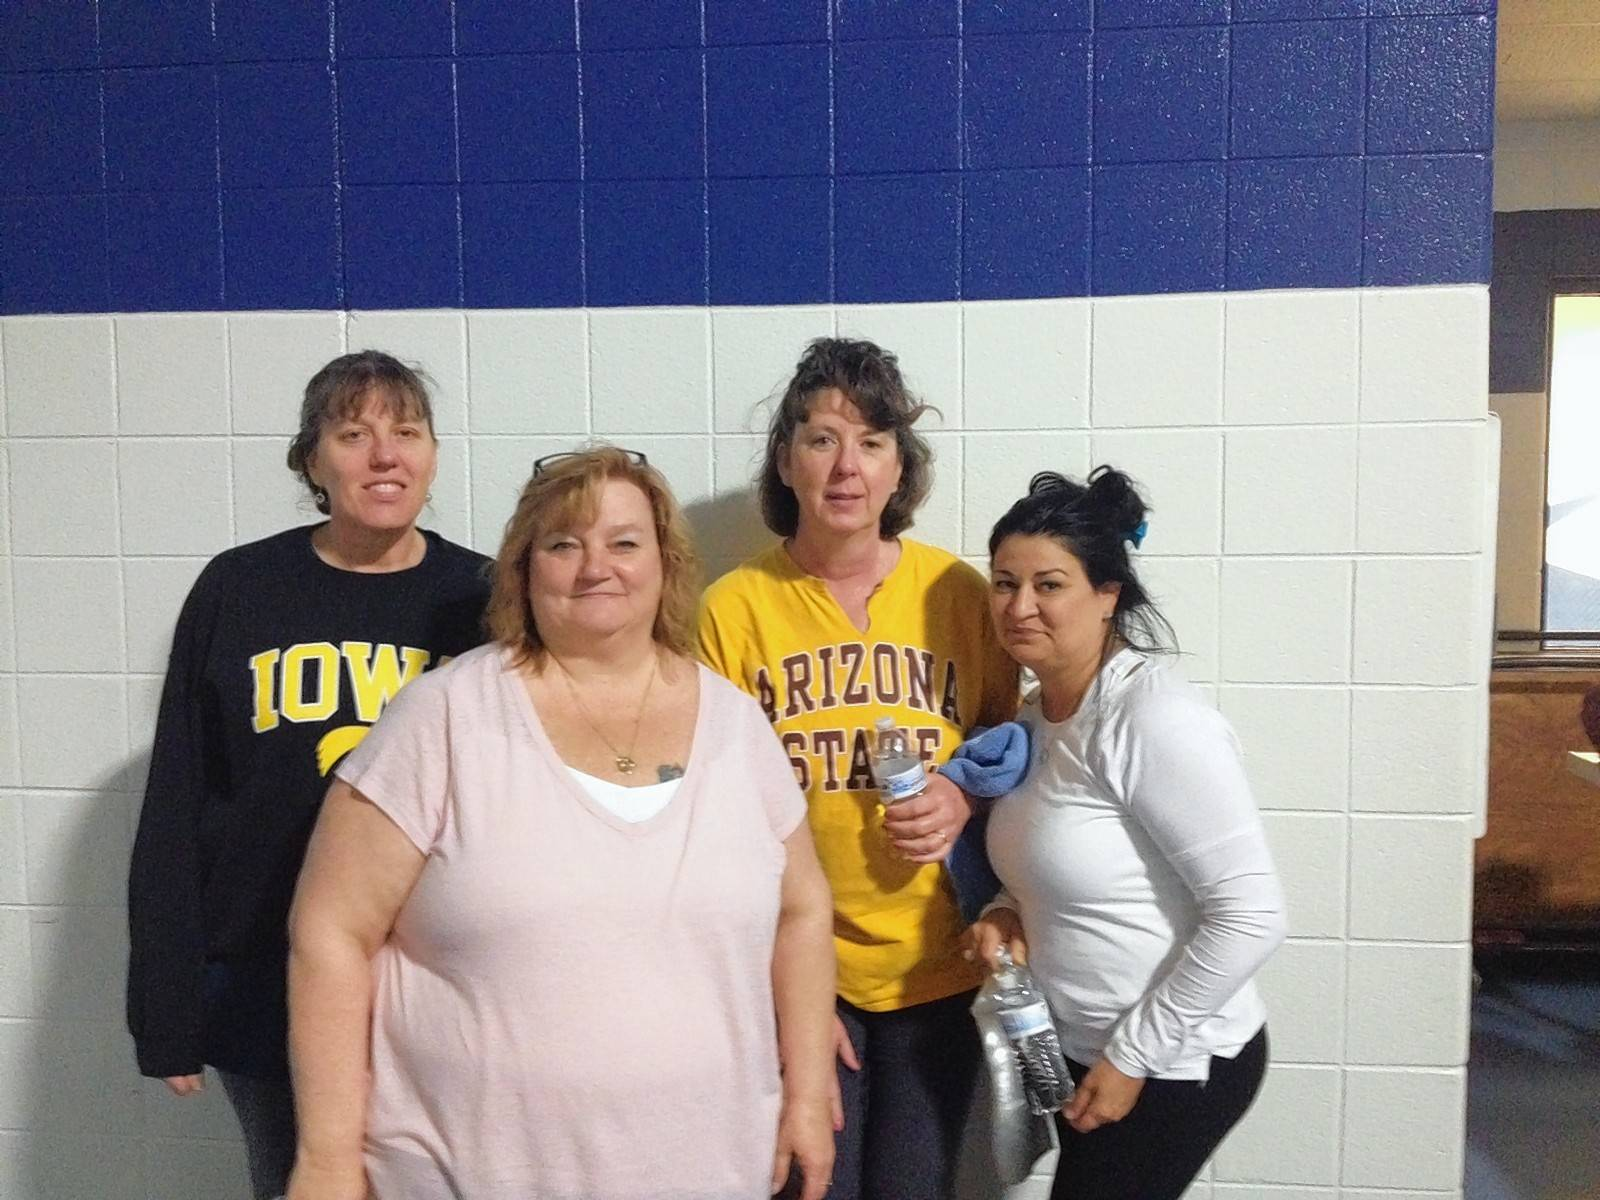 Team Cast-a-Weighs of Benefit were express dancing and sweating the night away during the Zumba Party at Elk Grove Fitness Pavilion. From left to right, Ann Haller, Jennifer Mogytych, Donna O'Donnell, and Maddie Garcia.